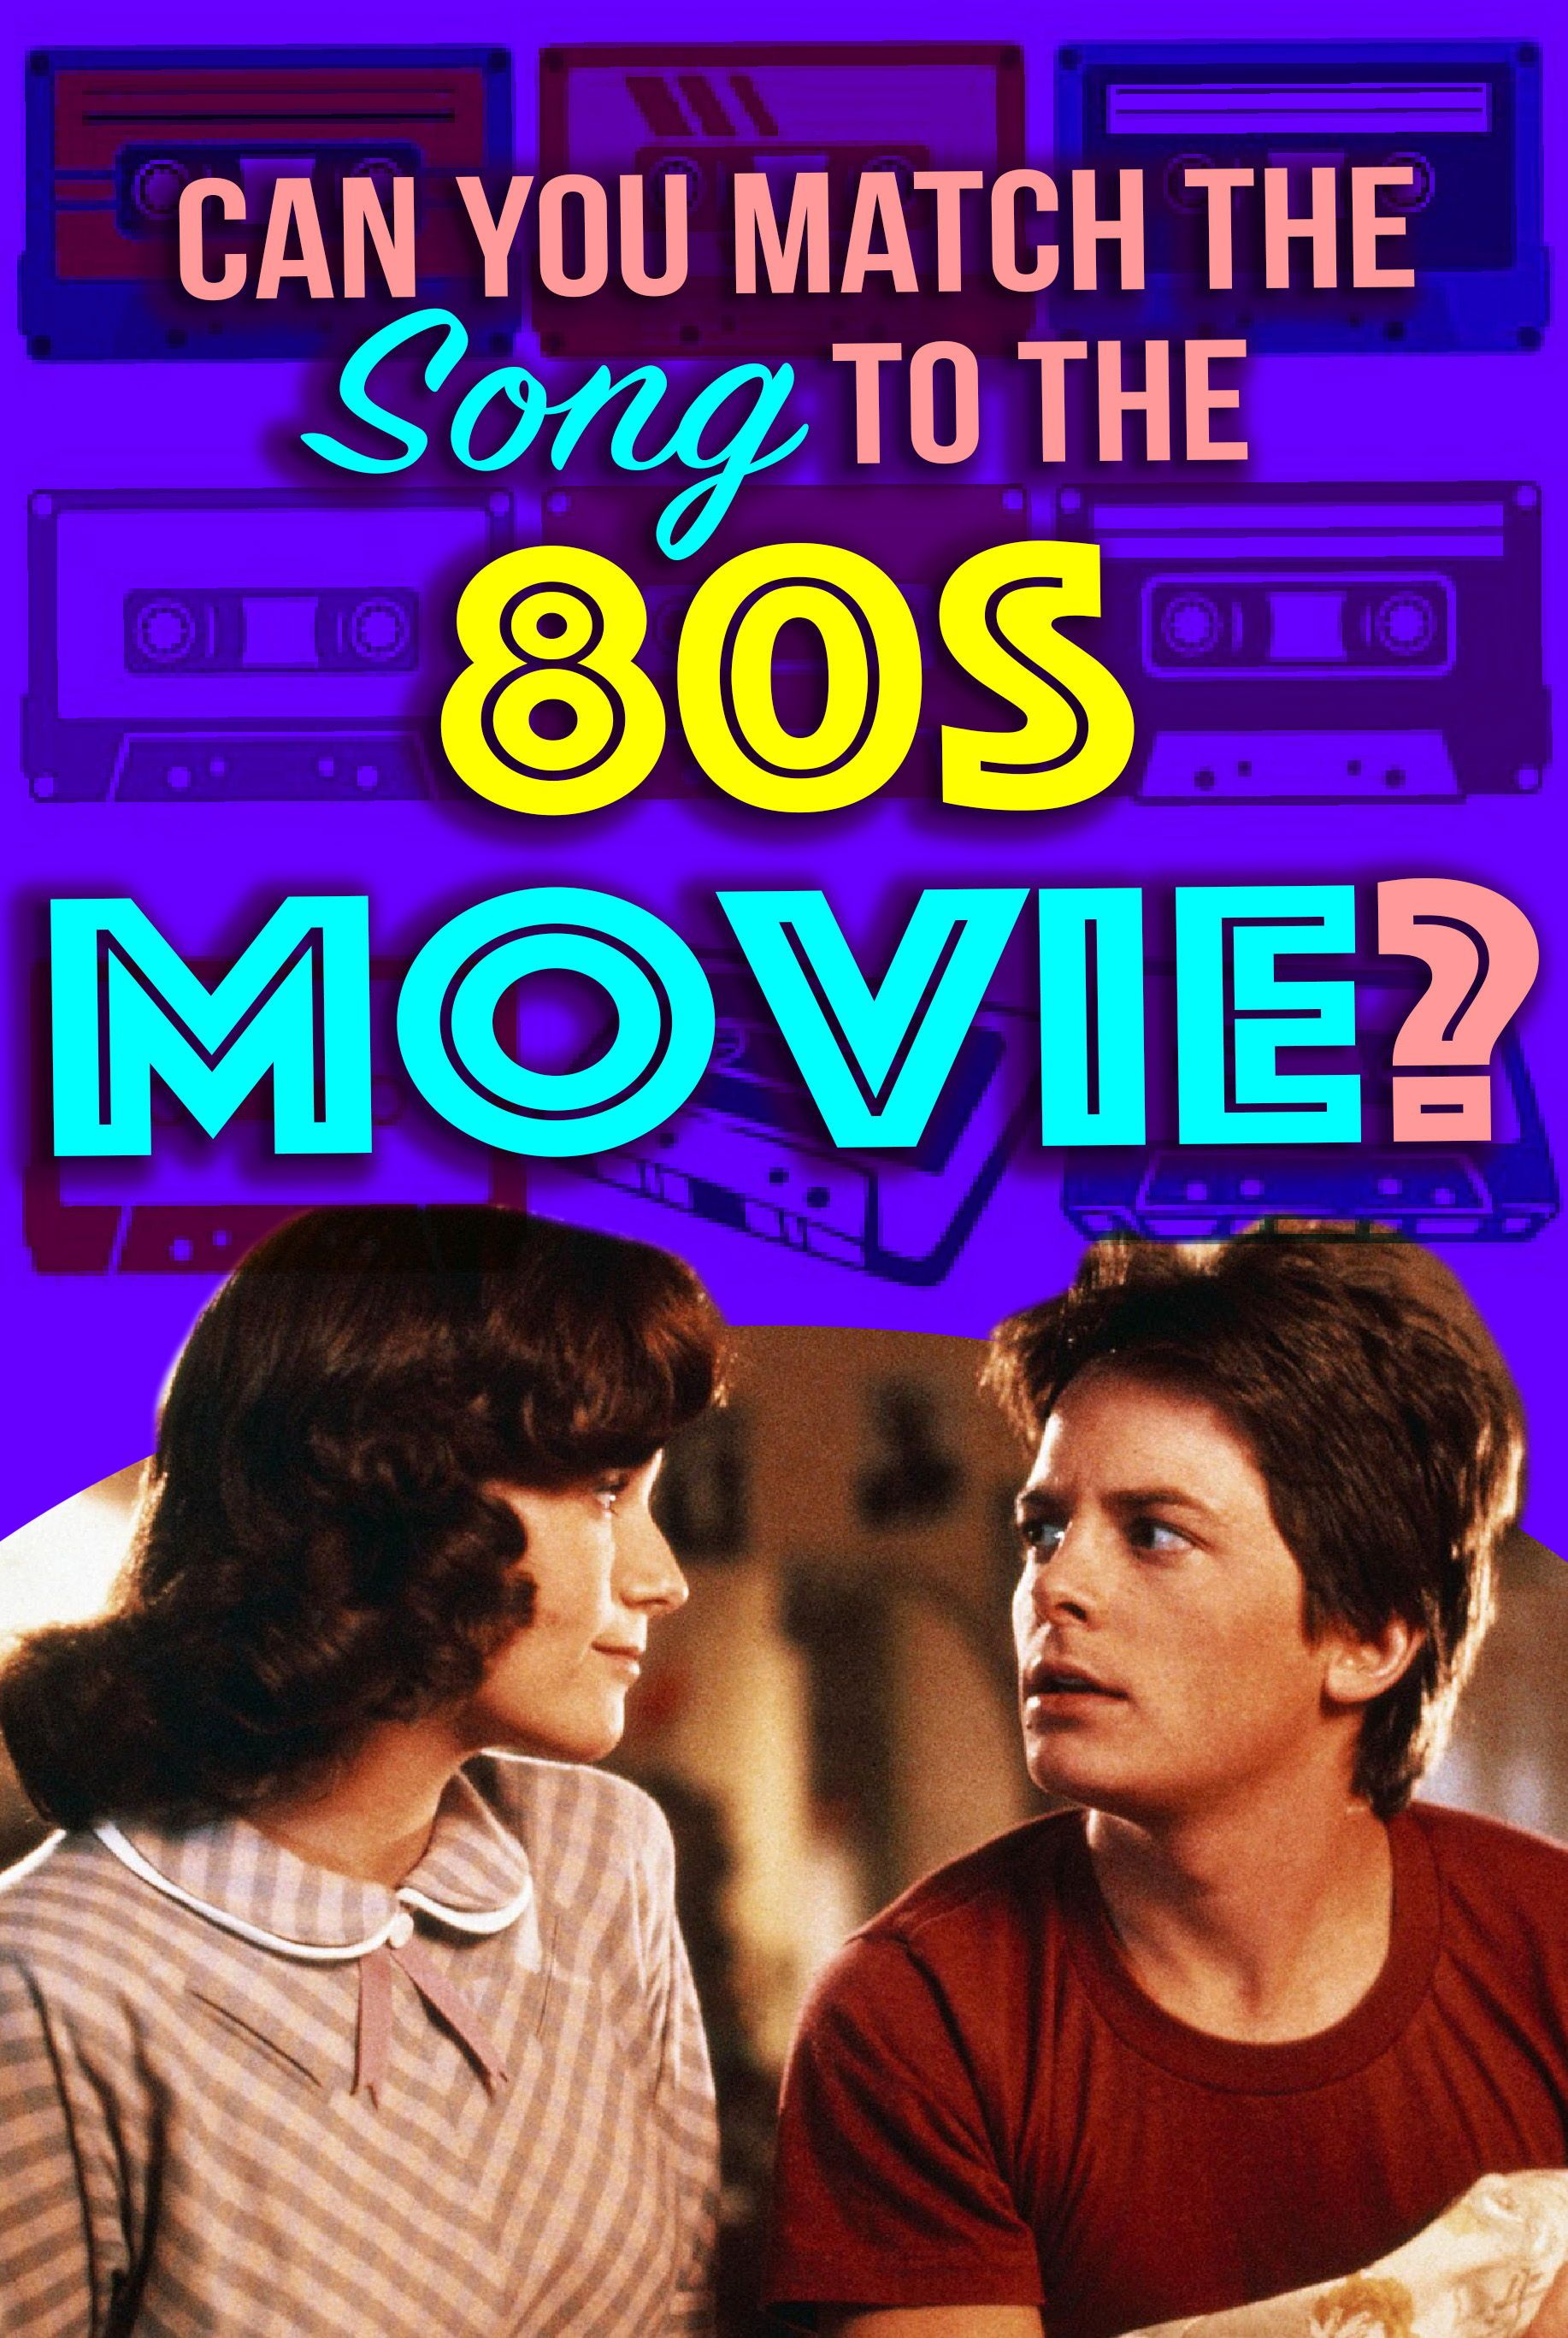 Quiz Can You Match The Song To The 80s Movie? in 2020